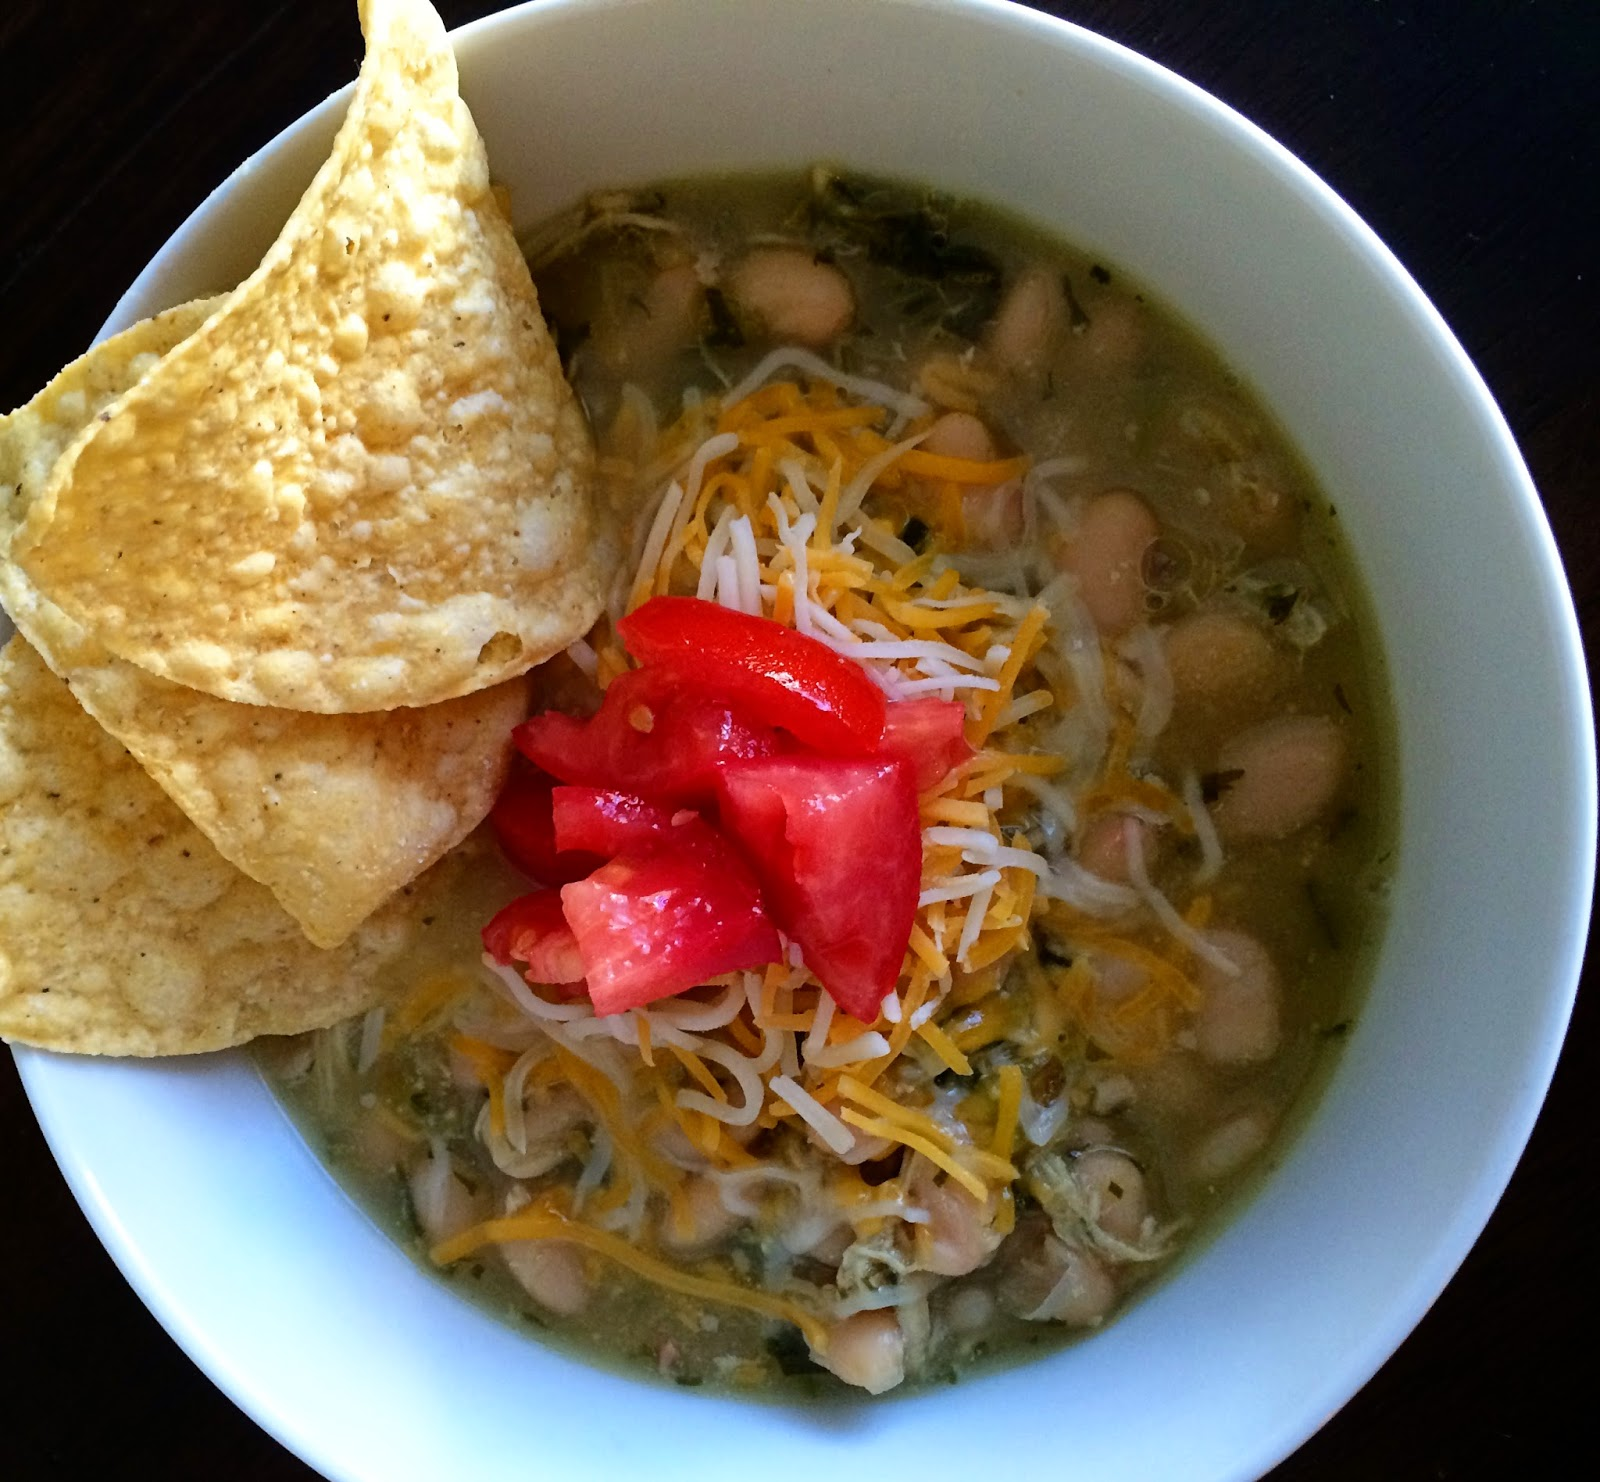 Good Eats The Best White Bean Chicken Chili Ready In 30 Minutes Or An Easy Crock Pot Option Brooke Romney Writes